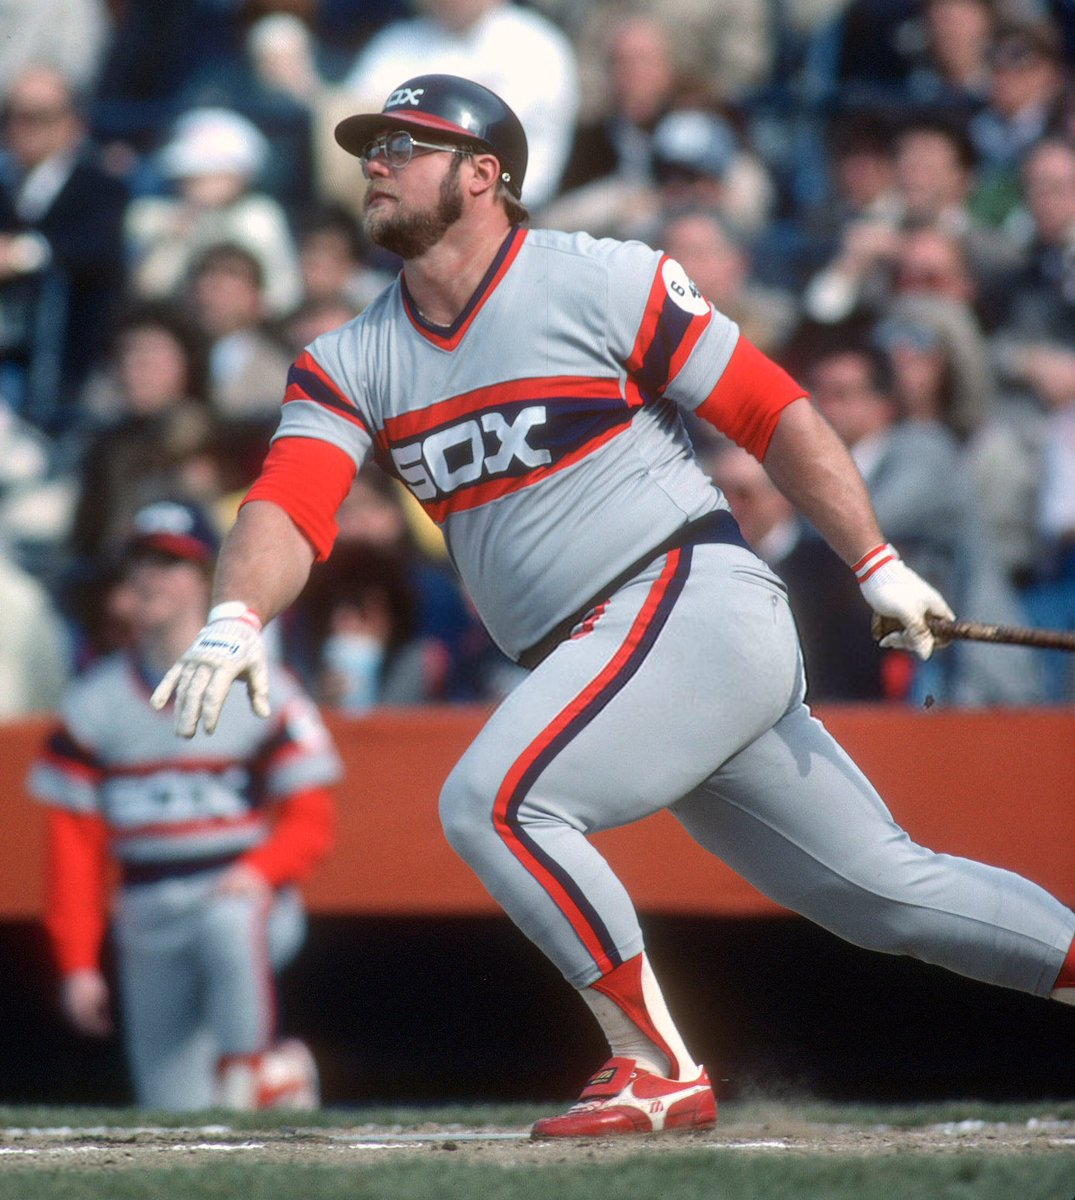 A robust waistline is a symbol of power and wealth. A blessing from the gods to feast on the fattened calf, wear exquisite fragrances, and hit 500-foot bombs with magnificent strength and might!  #MLB #Baseball #WhiteSox #80sBaseball https://t.co/S86eqUY9q2